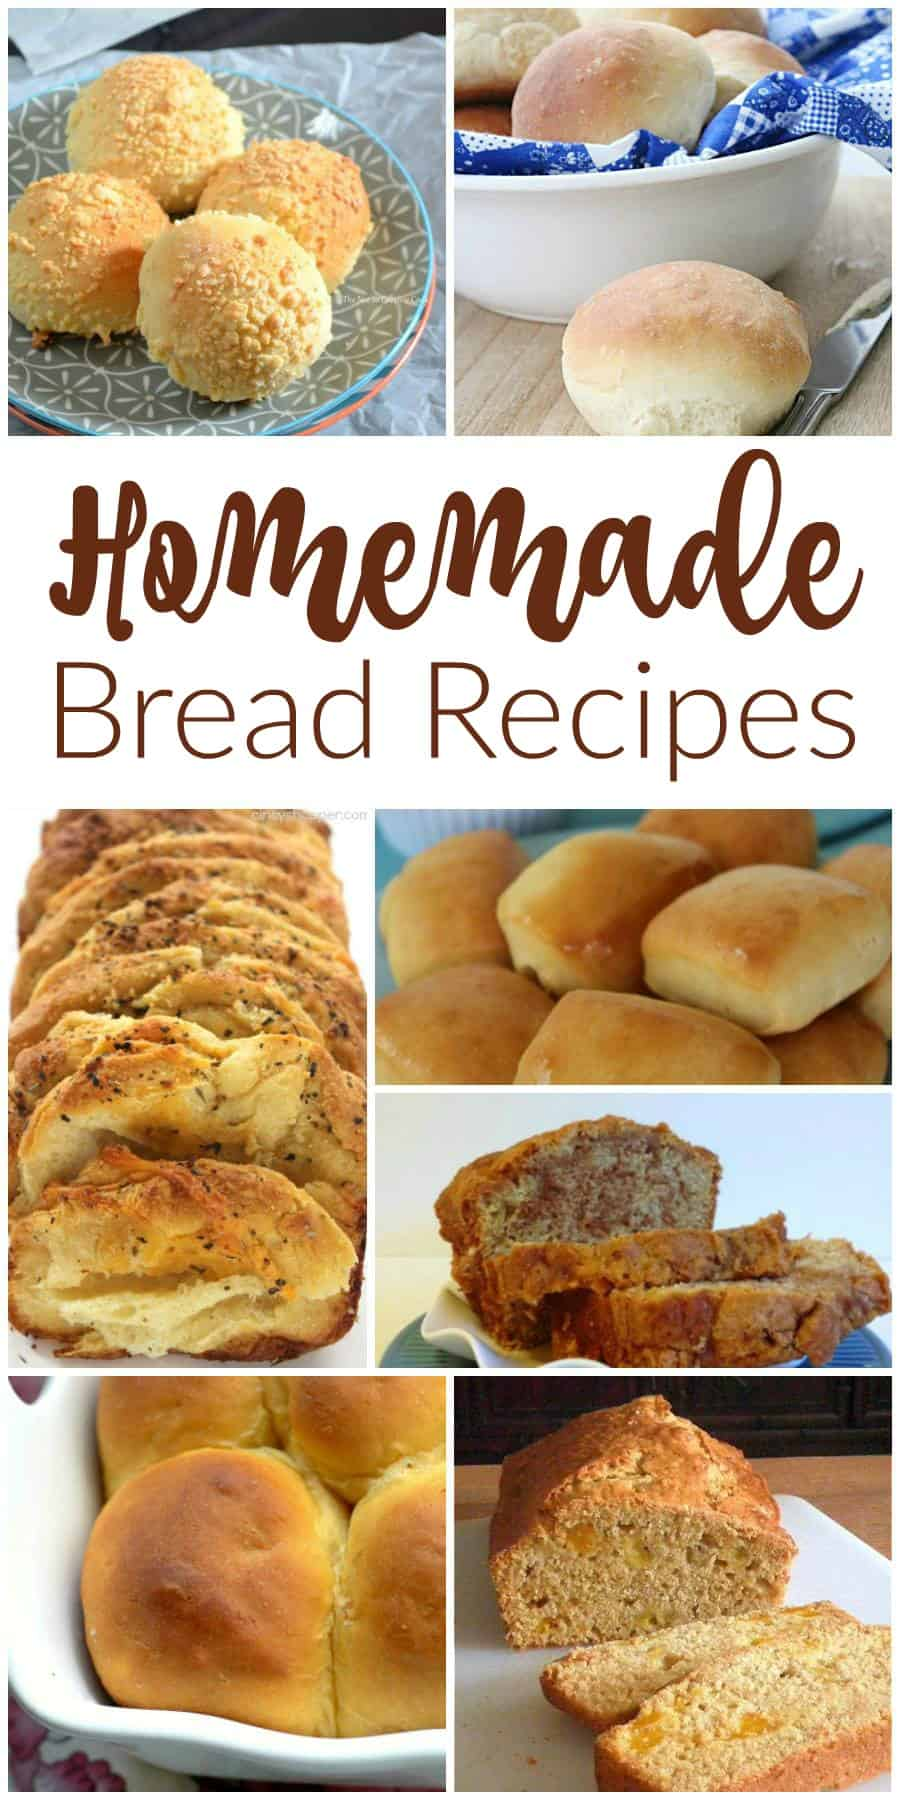 Homemade Bread Recipes - Delicious Dishes